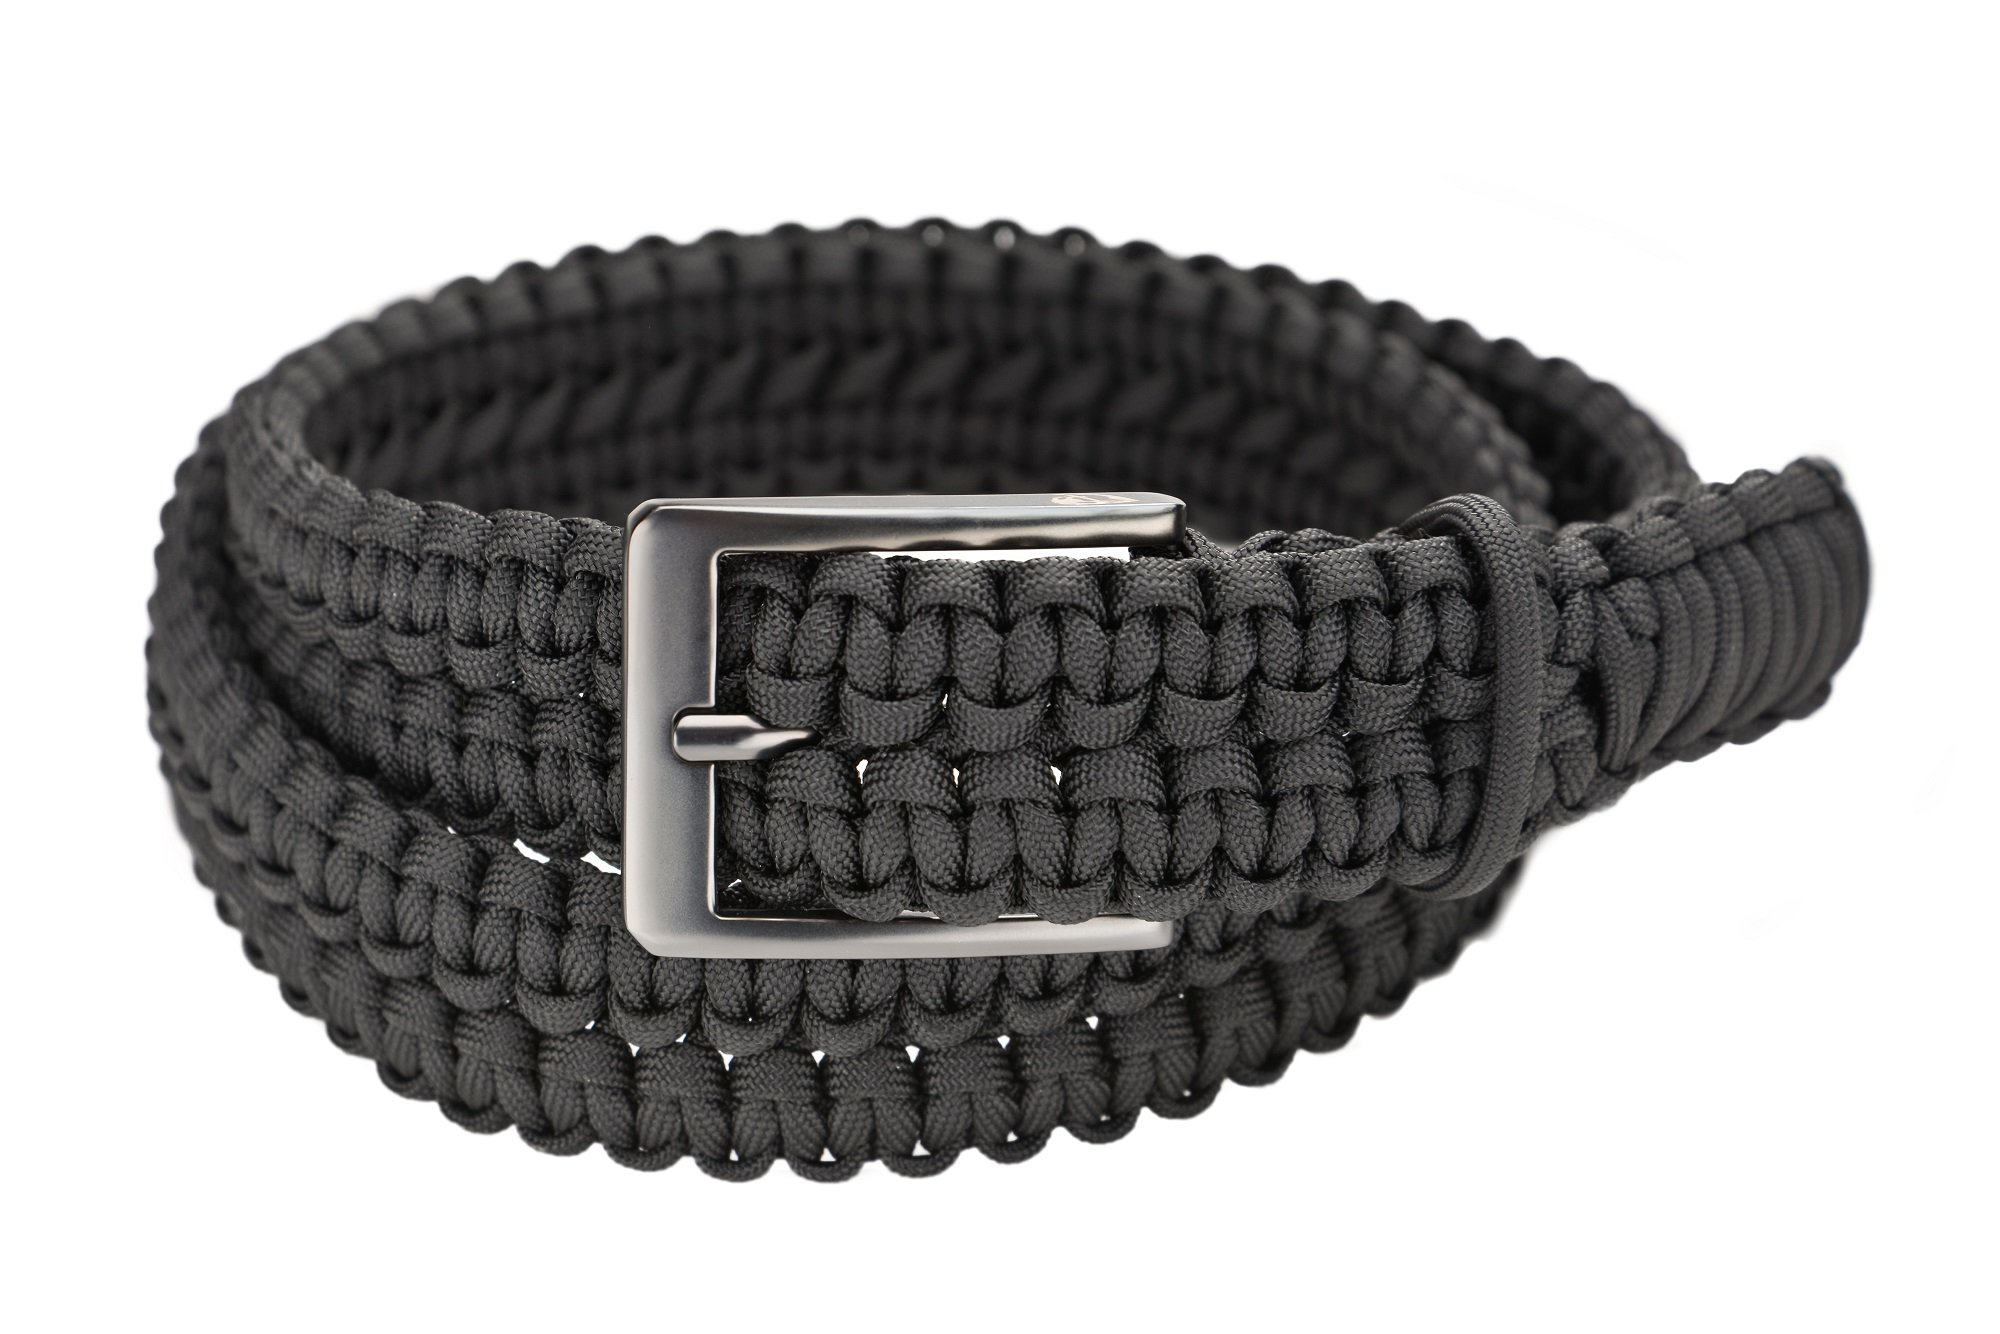 RattlerStrap New Gun Metal Edition Paracord Survival EDC Belt - 100+ Feet of USA Made 550 lb. Handwoven Emergency Nylon Parachute Cord - Black (Small) by RattlerStrap